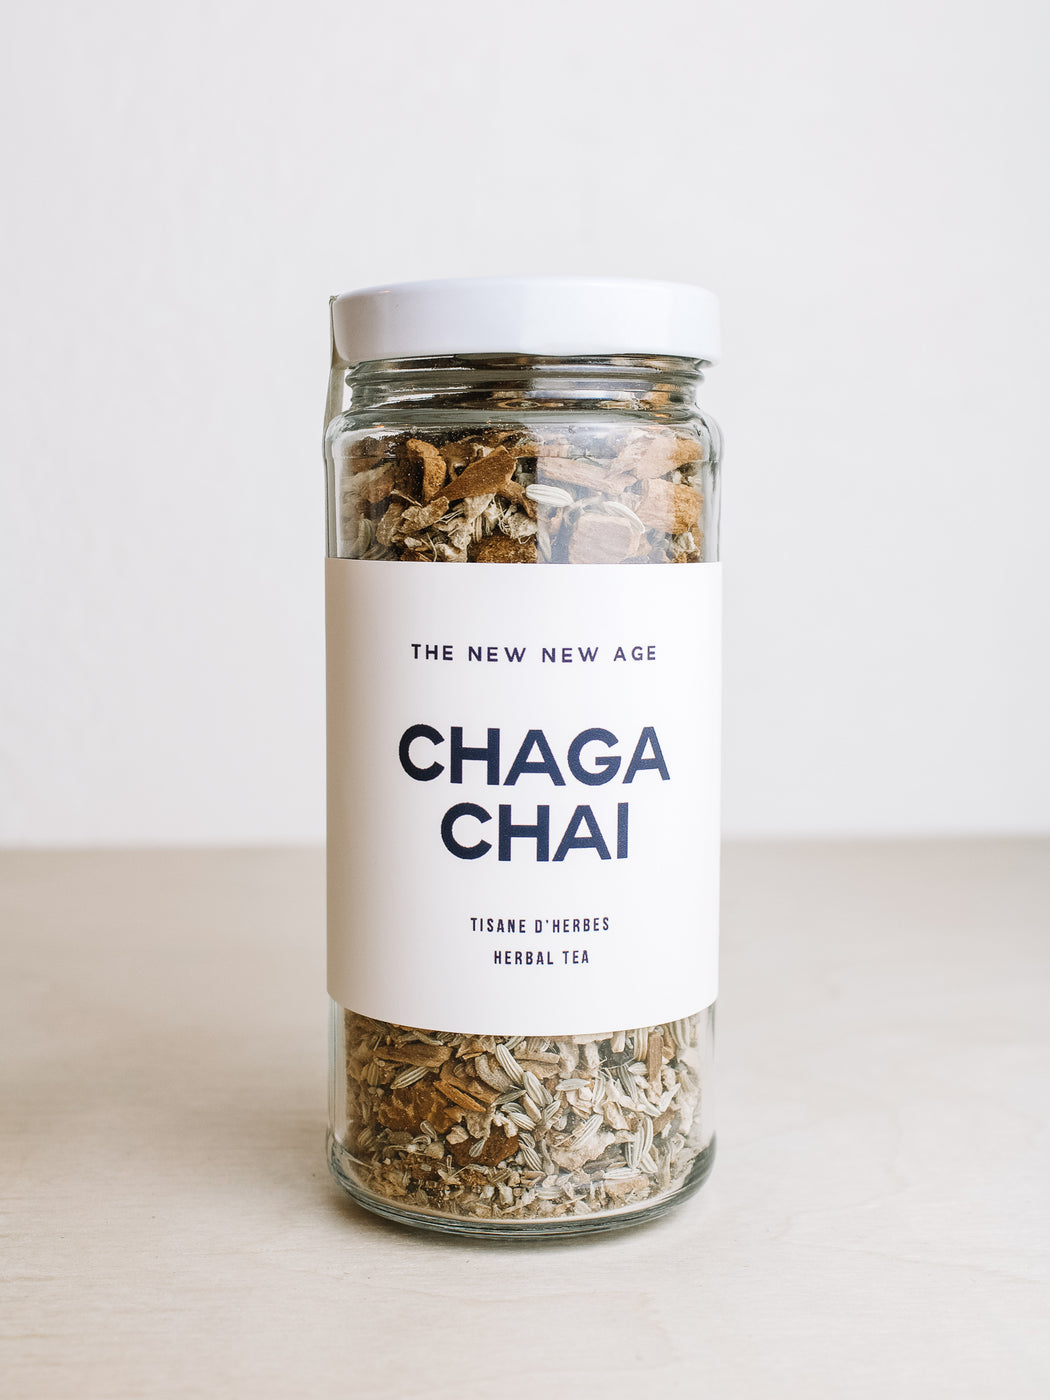 The New New Age - Chaga Chai